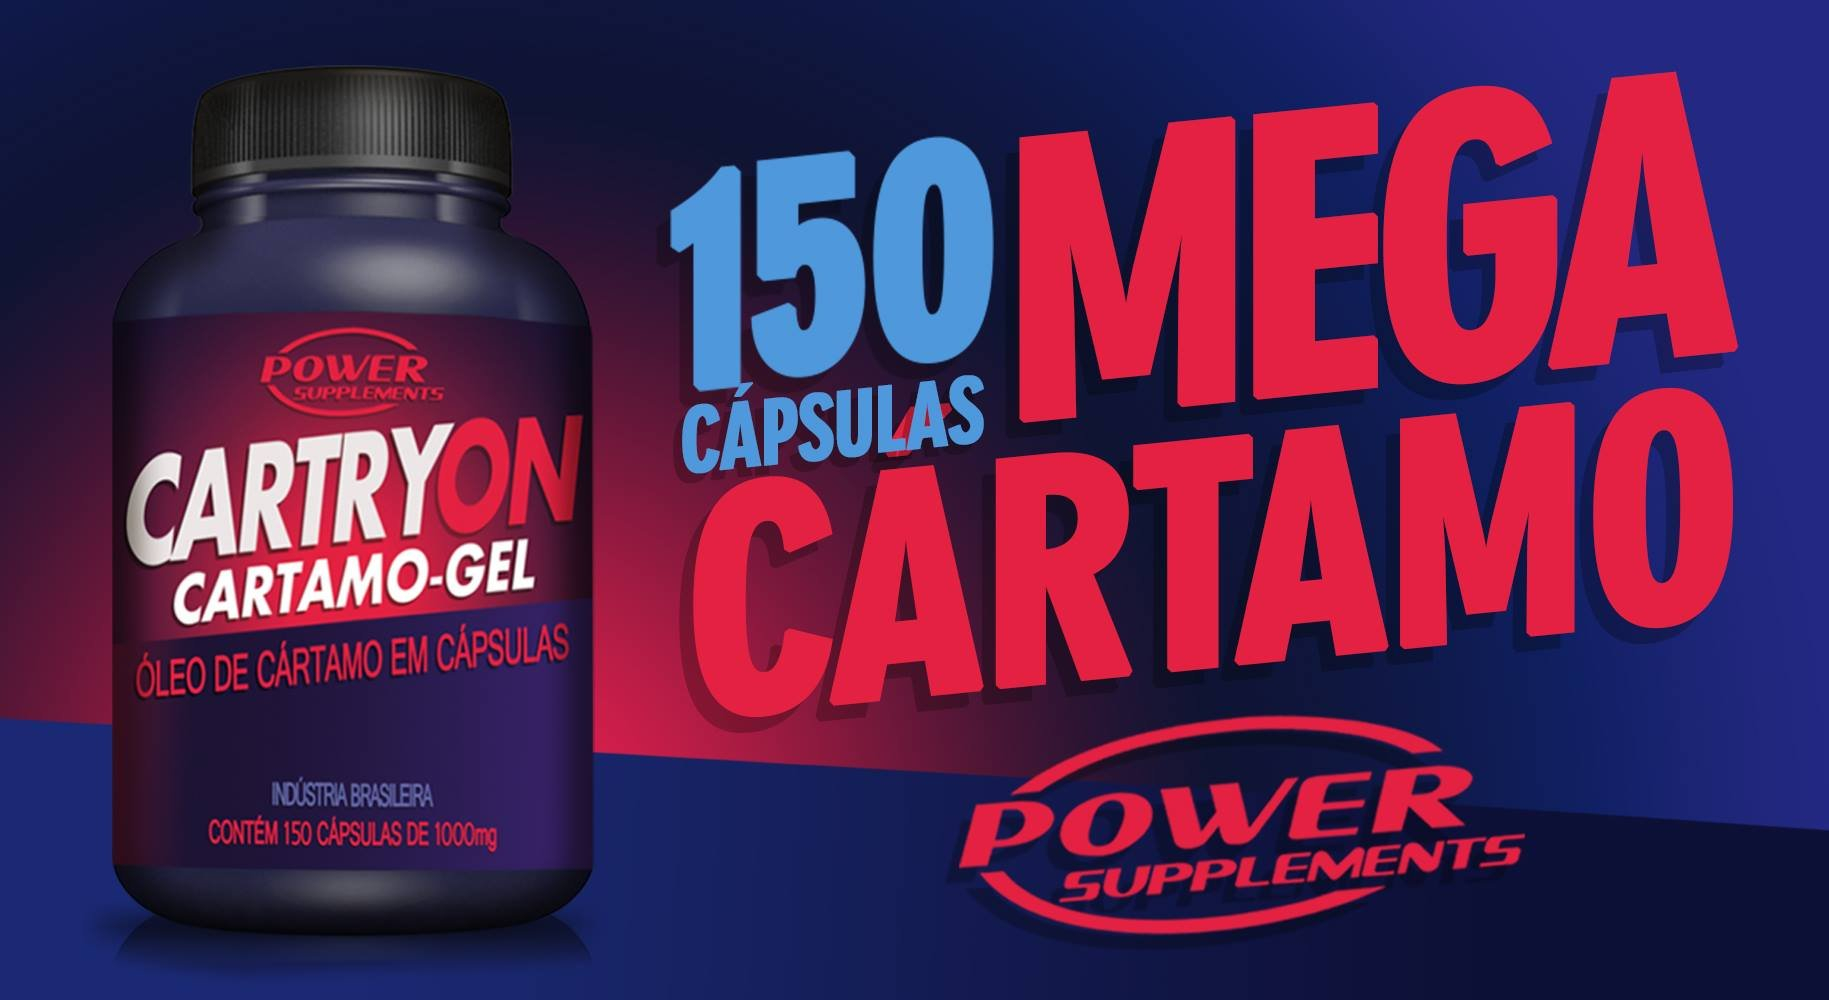 Cartryon - Óleo de Cártamo da Power Supplements